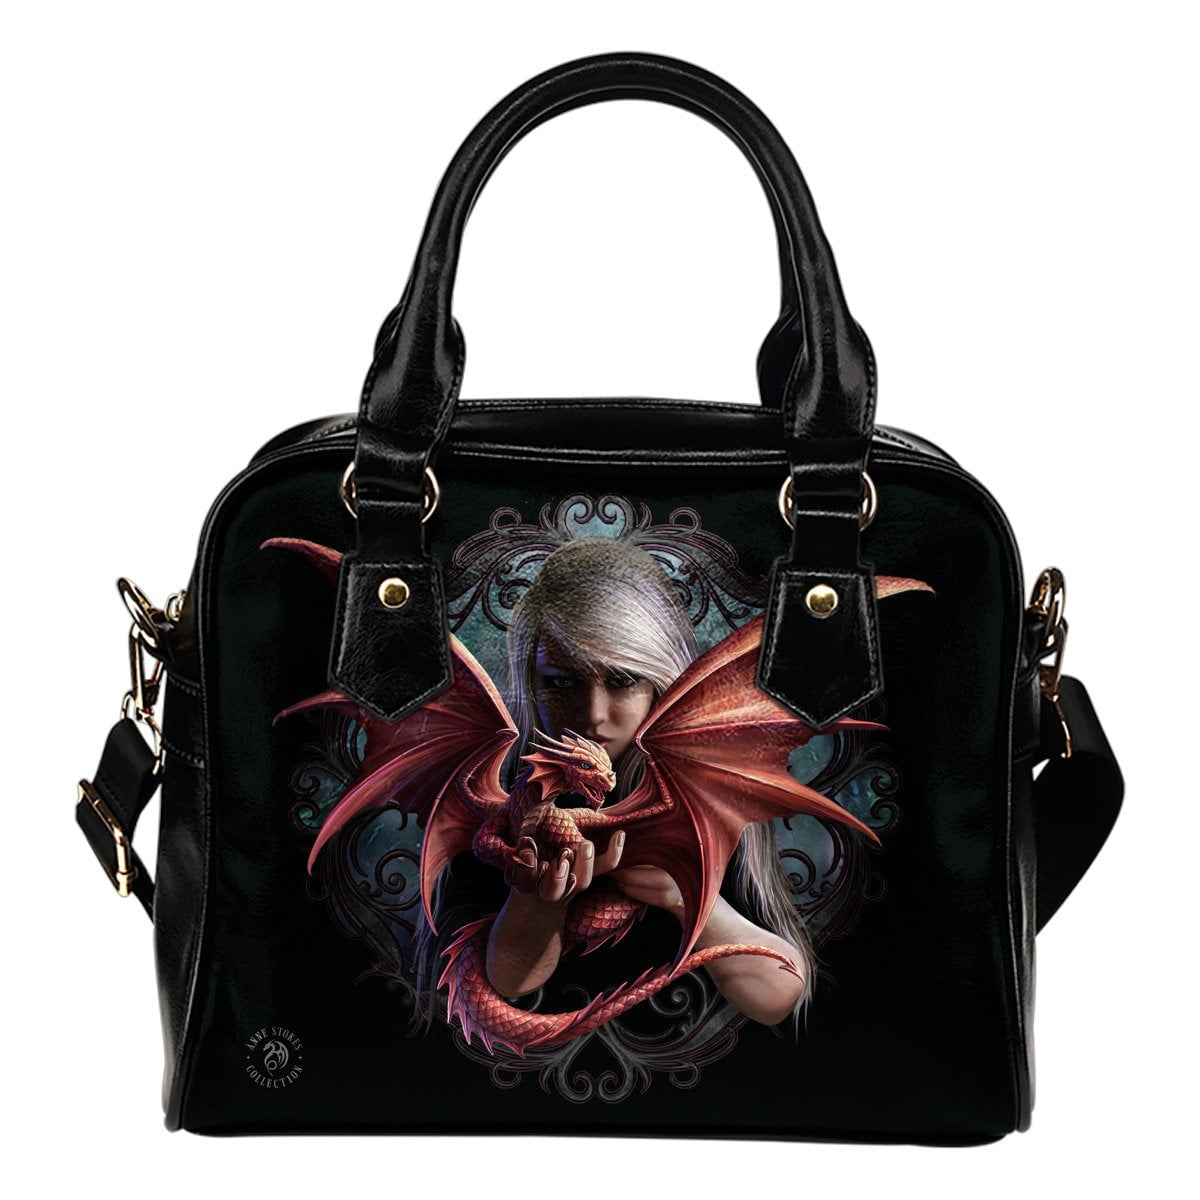 Dragonkin Shoulder Handbag